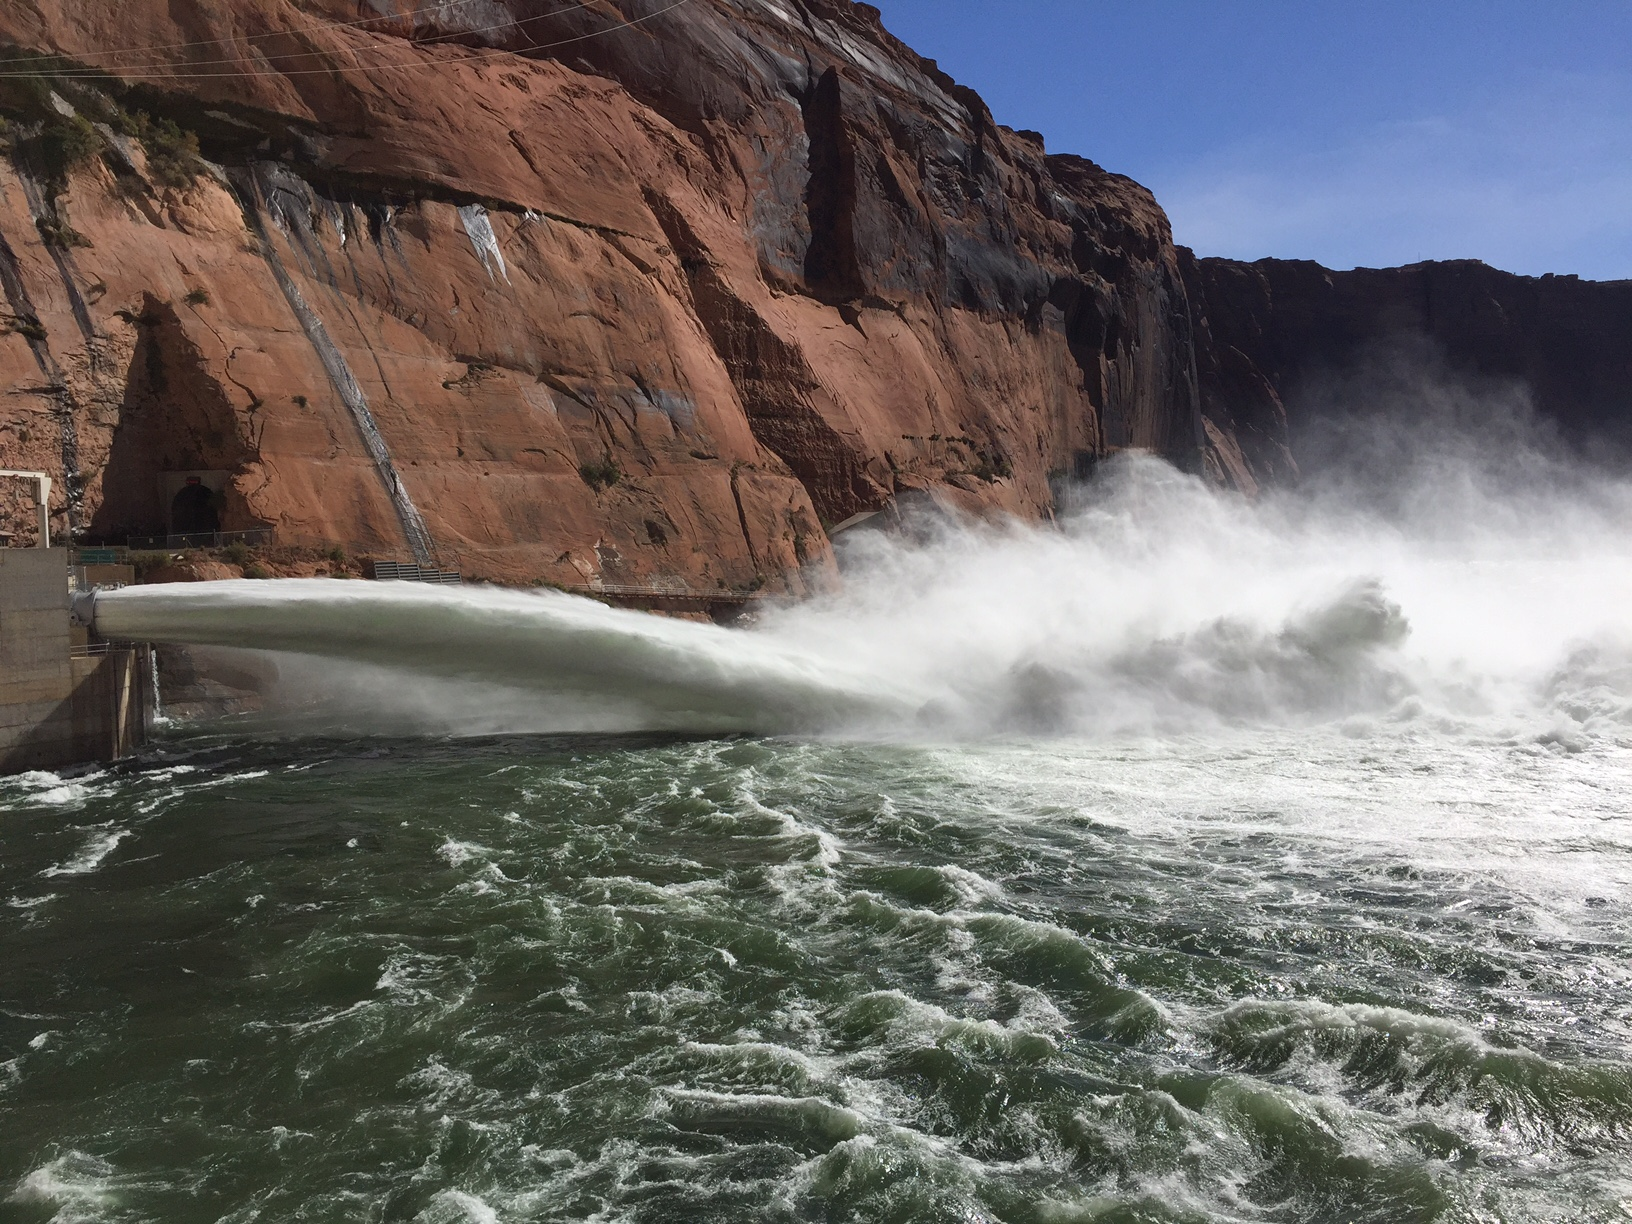 Water sprays from Glen Canyon Dam into the Colorado River